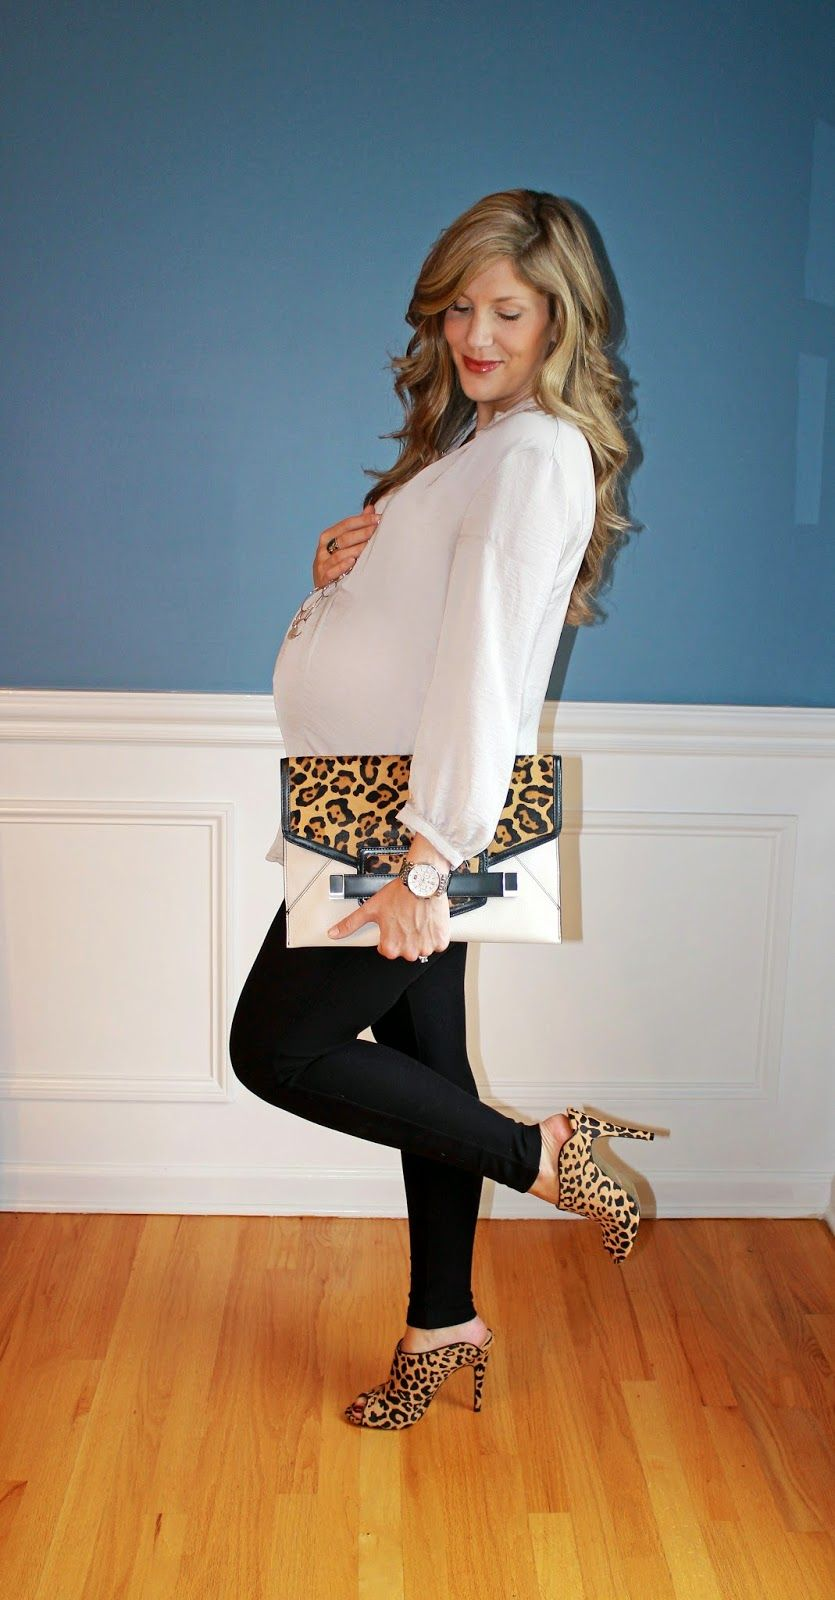 ef51262d974 Outfitted411  Mule Heels...maternity fashion leggings leopard print ...